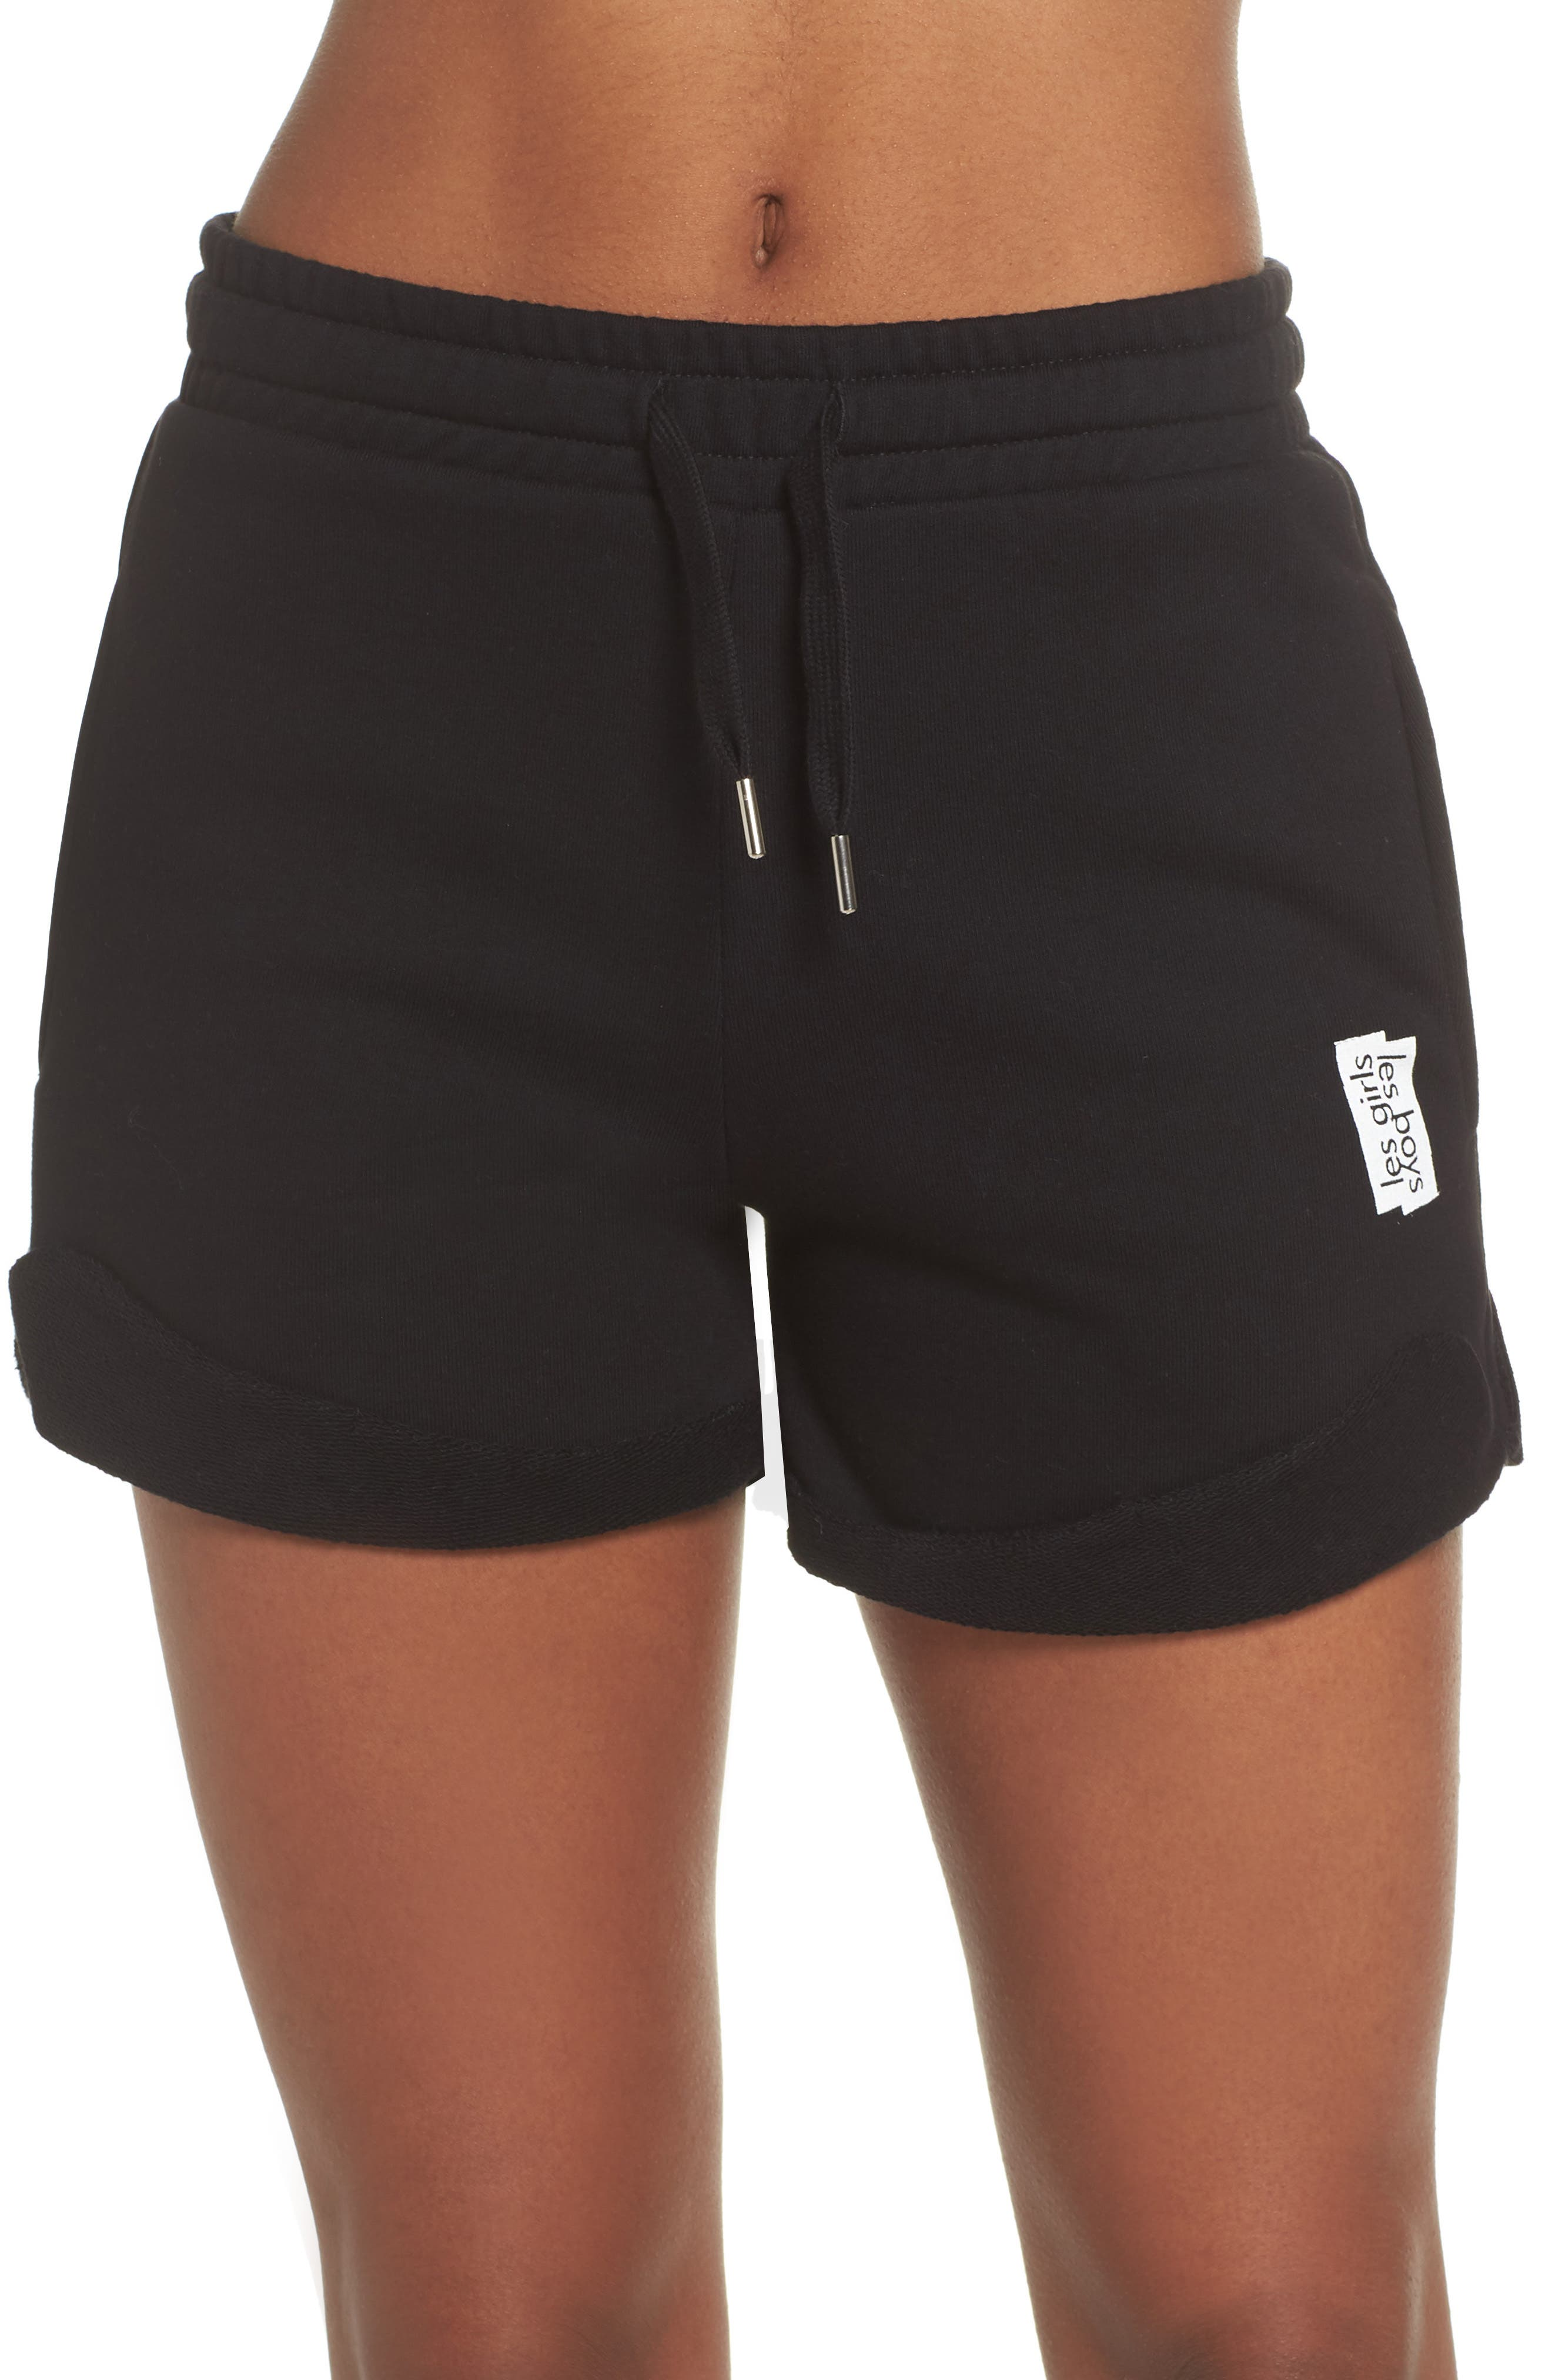 French Terry High Waist Shorts,                         Main,                         color,